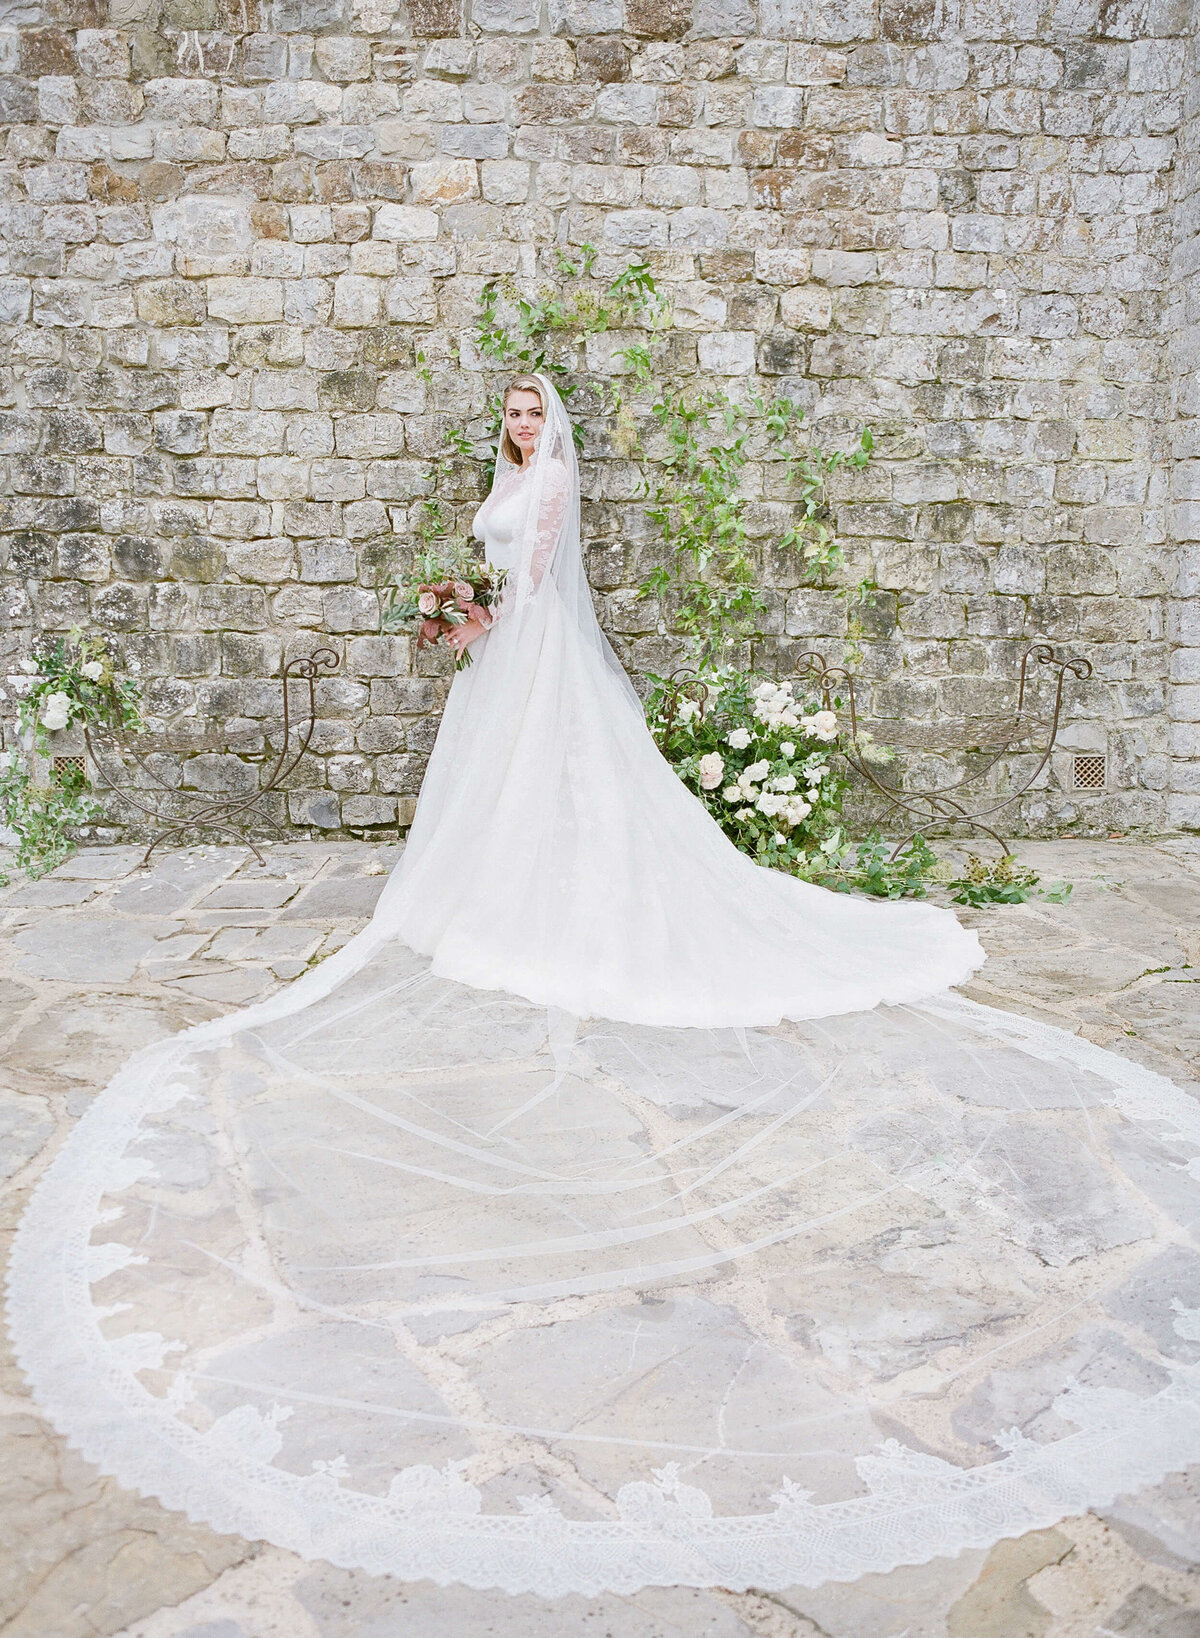 11-KTMerry-photography-Kate-Upton-Valentino-wedding-gown